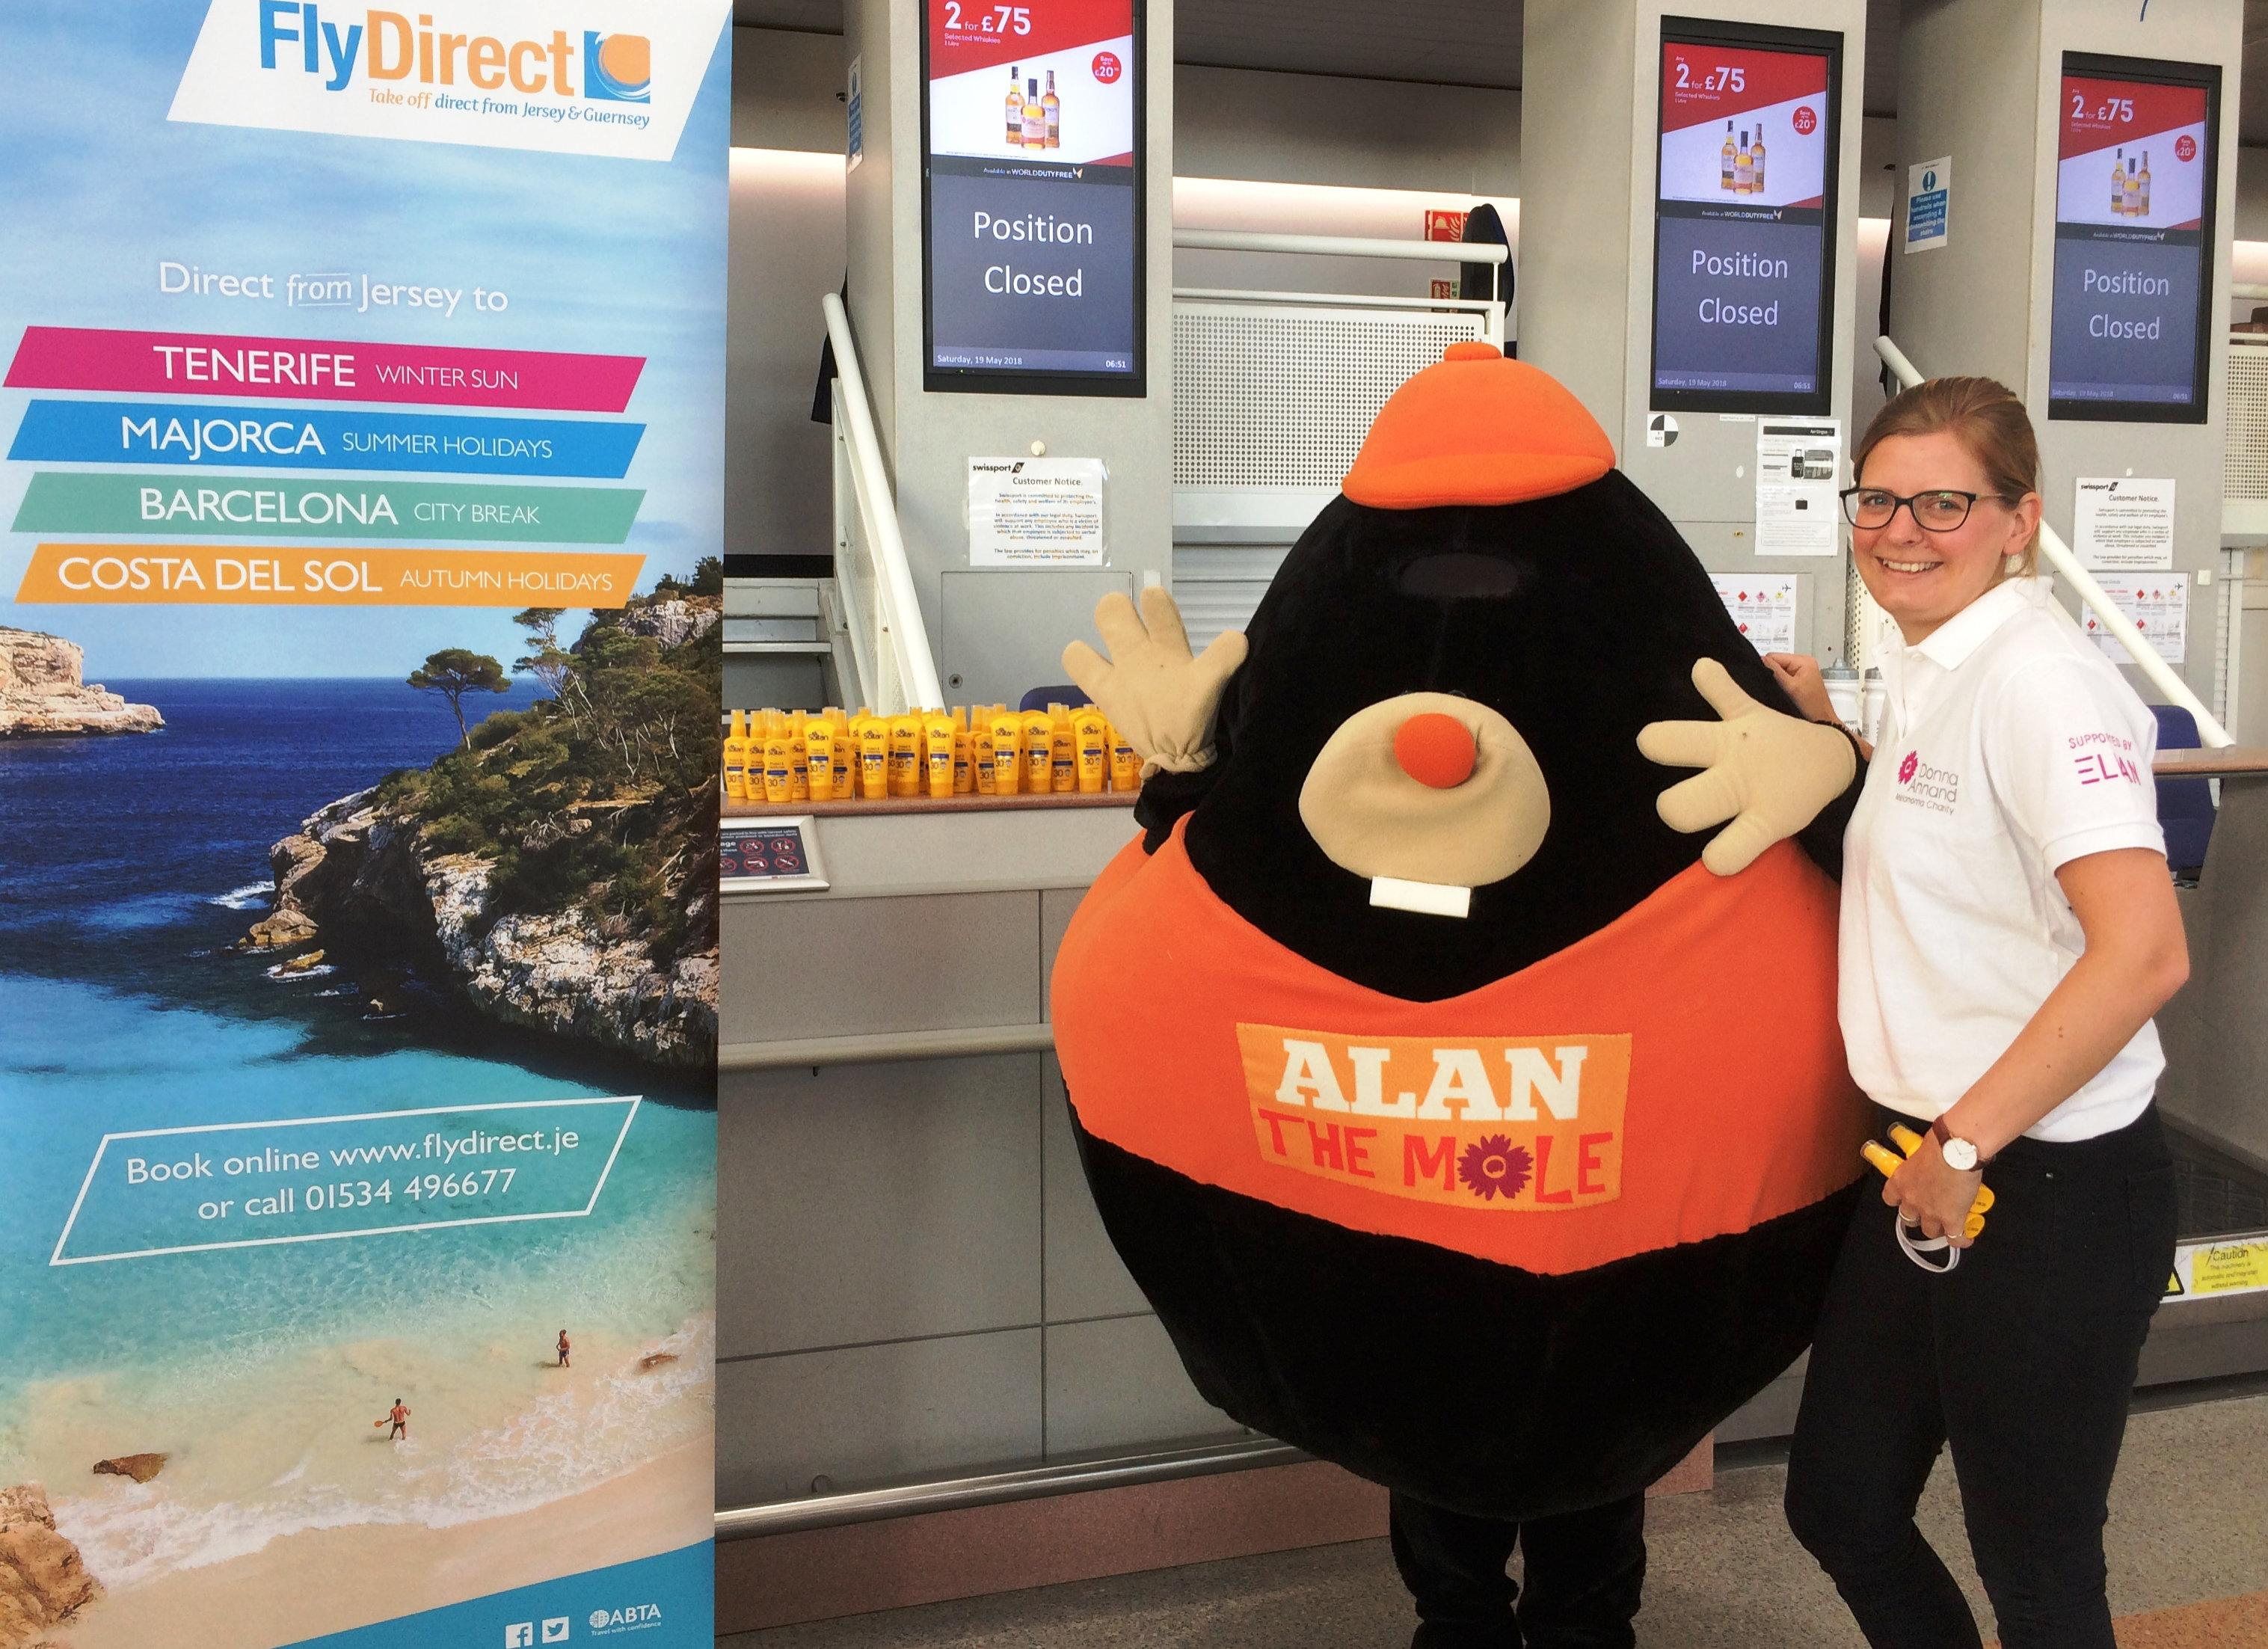 C.I. Travel Group's FlyDirect brand has launched a full summer of direct flights from the Channel Islands to Majorca, the Costa del Sol, Barcelona and Madrid, new for 2018